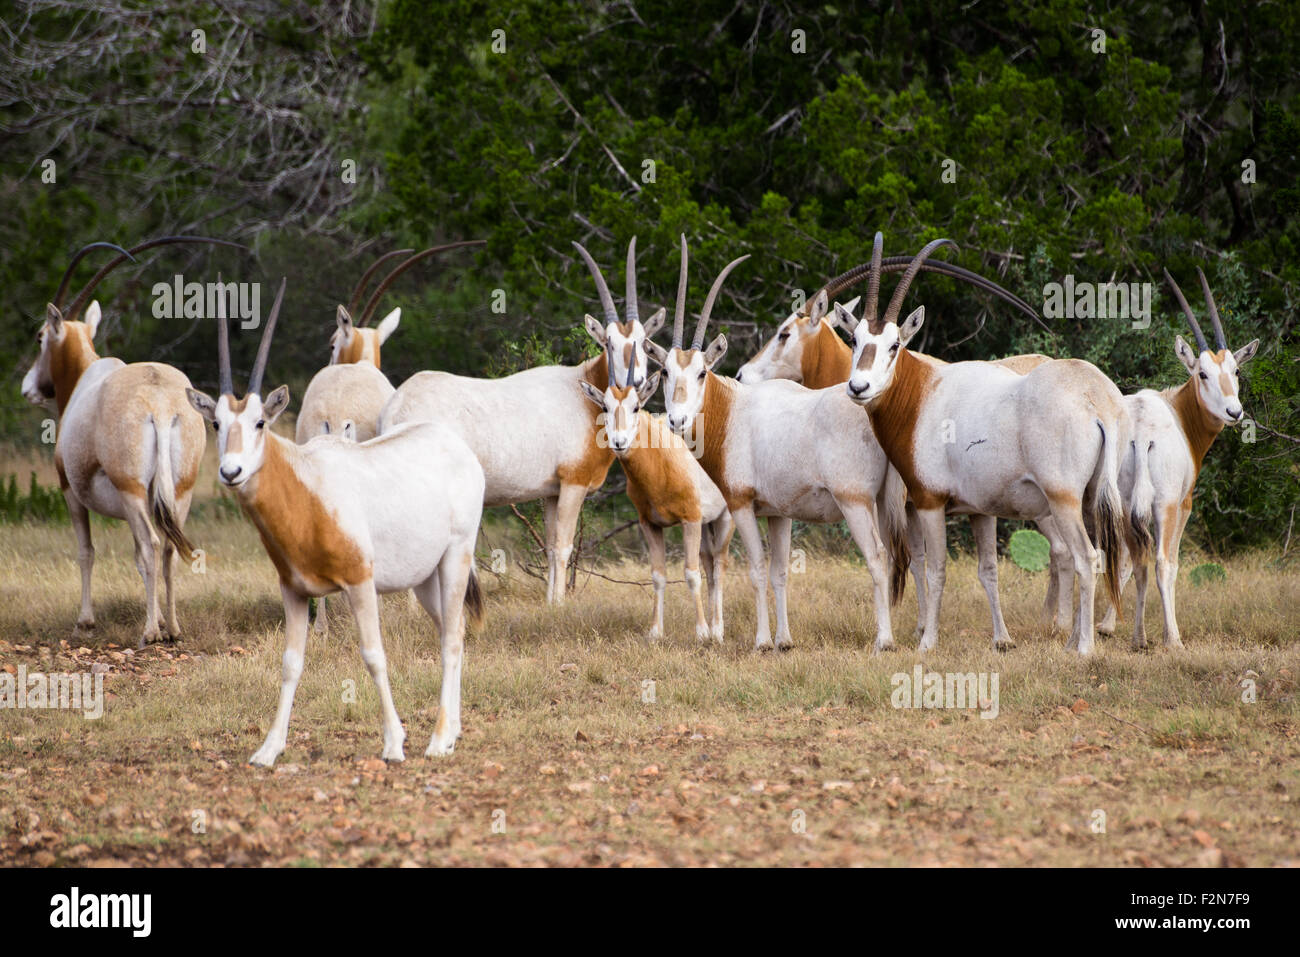 Wild Scimitar Horned Oryx herd. These animals are extinct in their native lands of Africa. - Stock Image